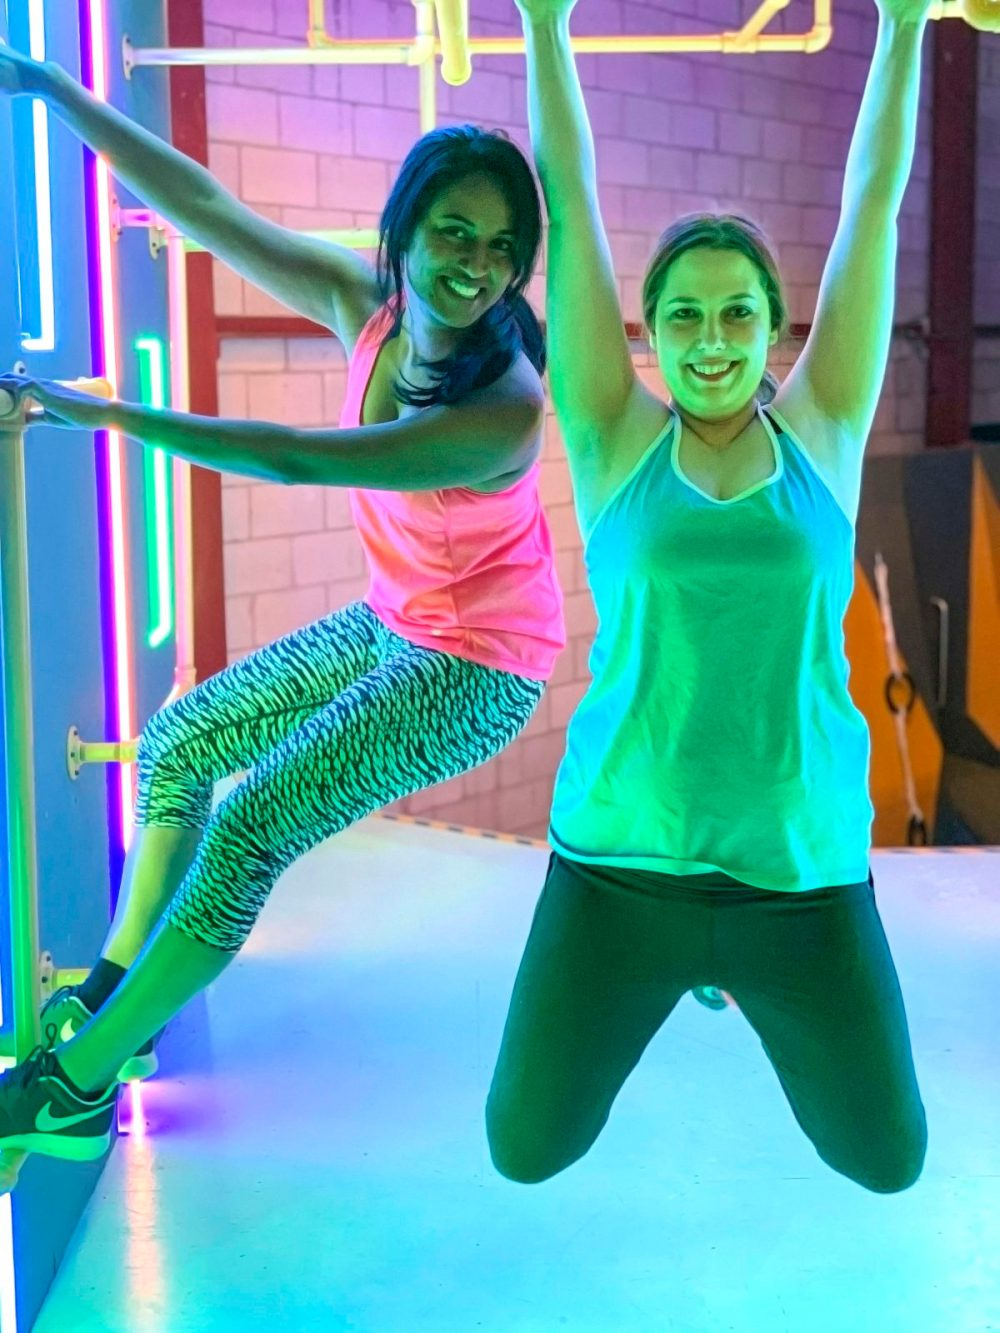 Hit Up a Gym or Obstacle Course